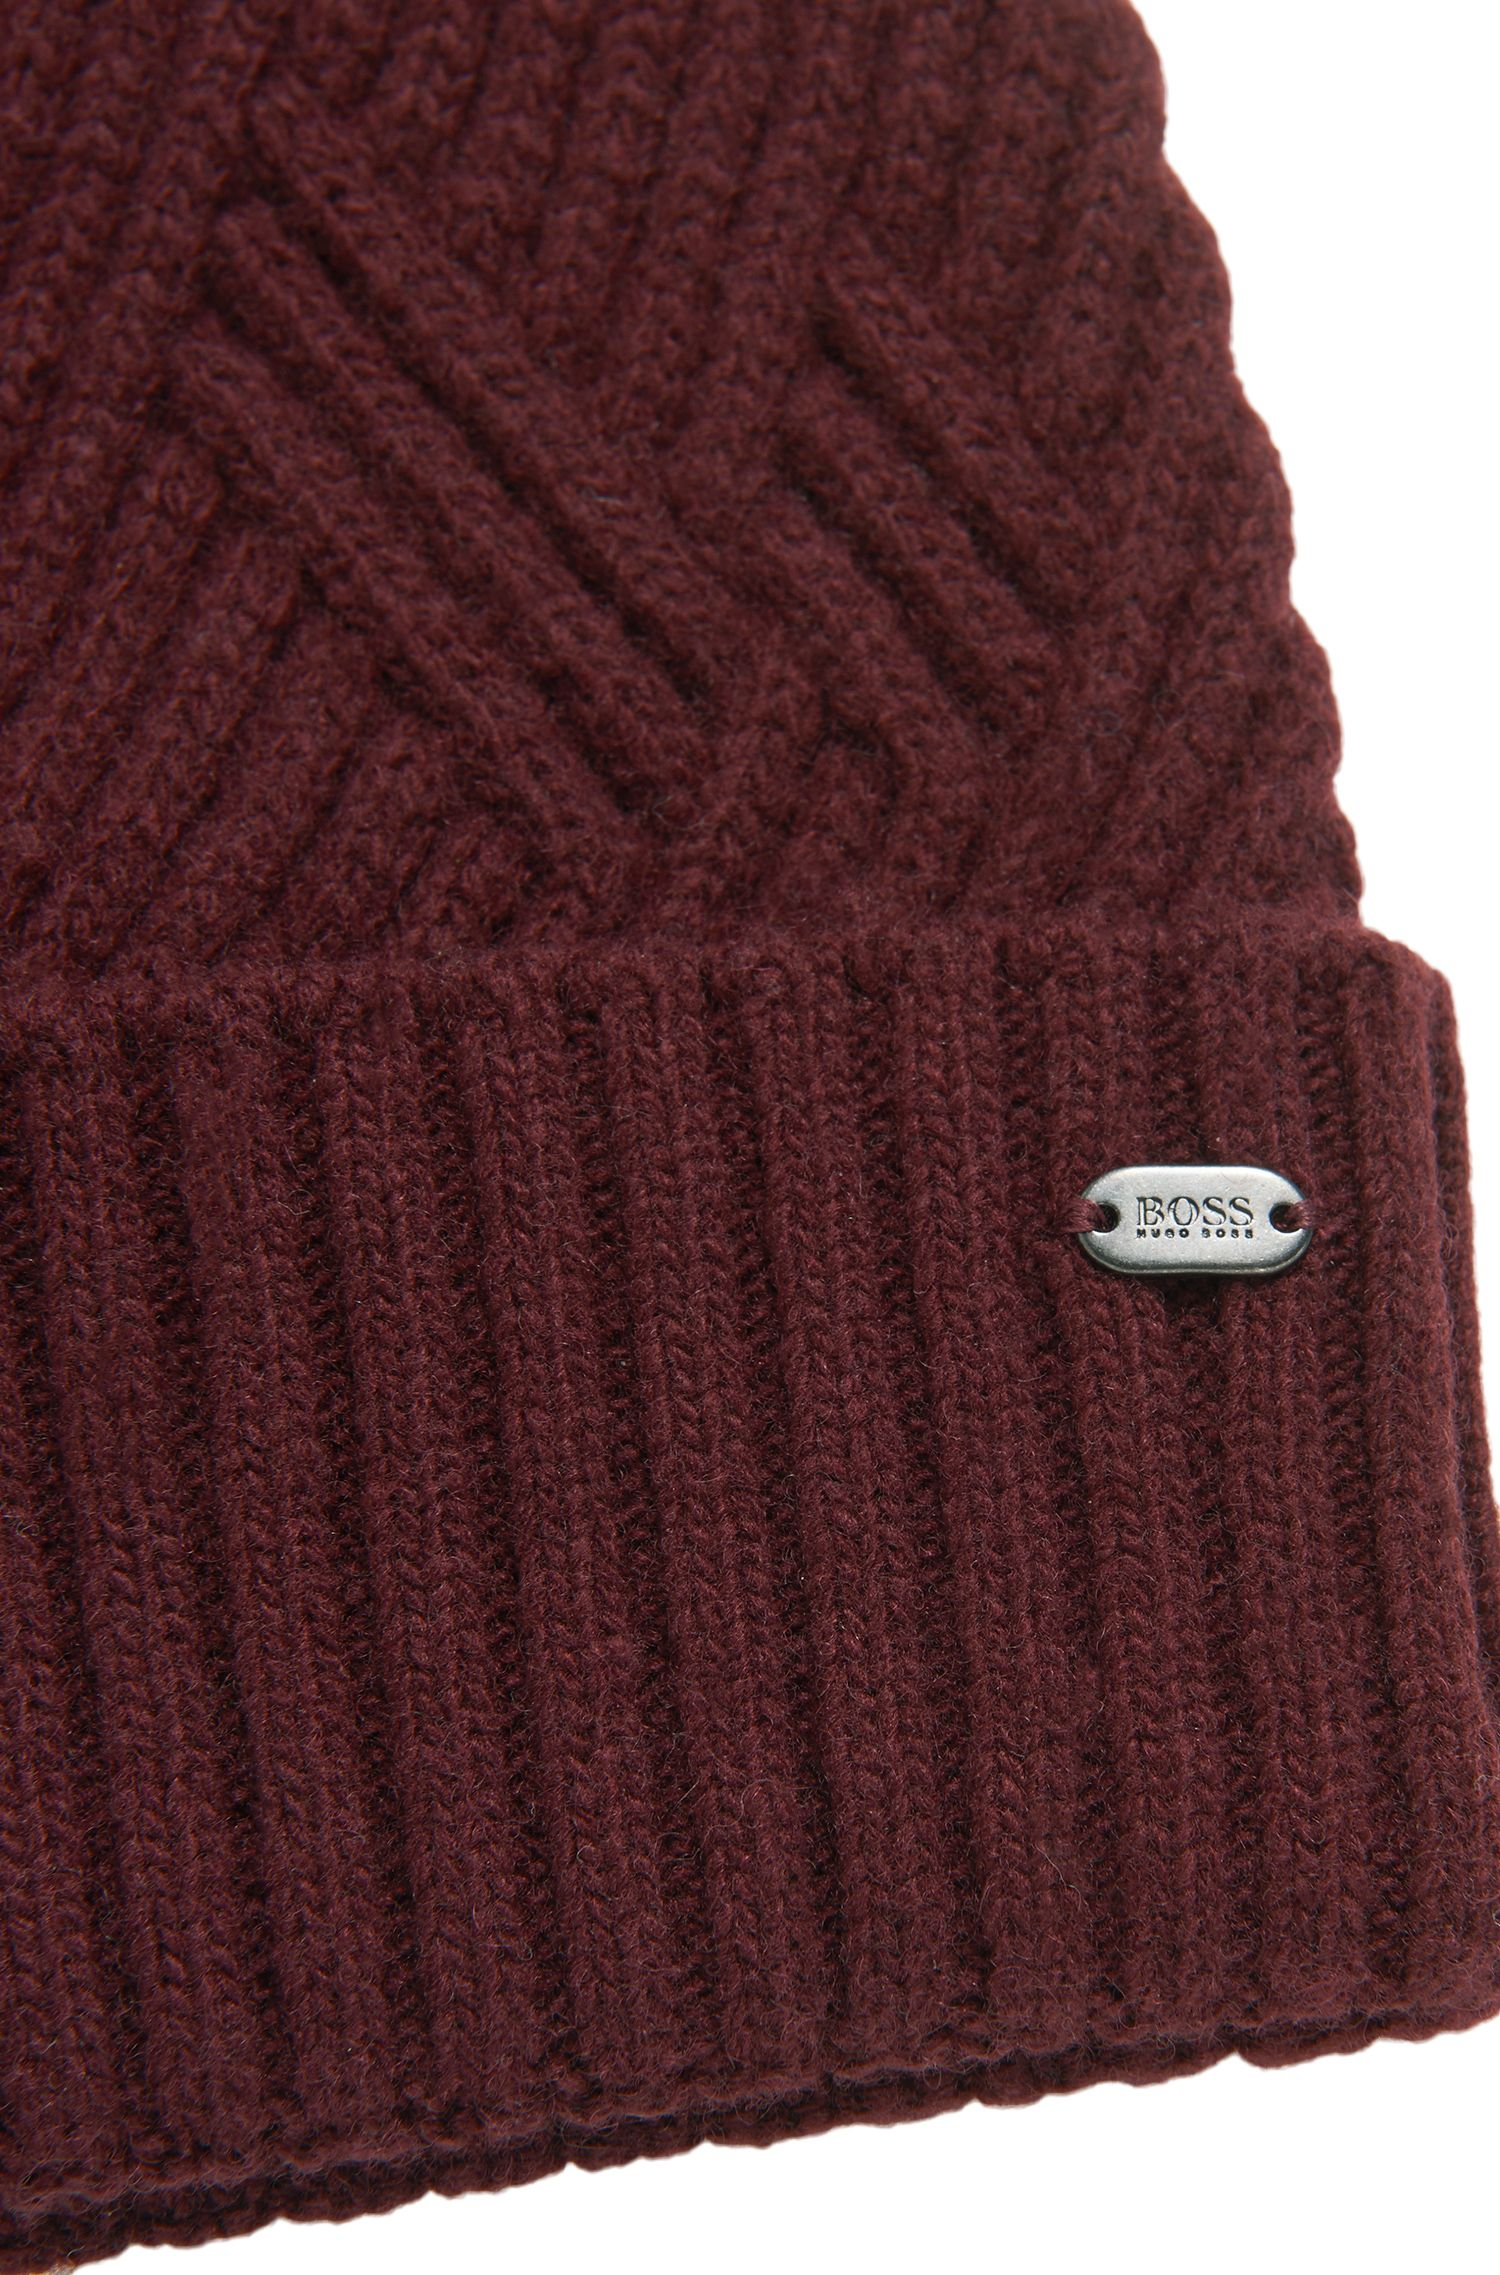 'Beanie Cableknit' | Wool Blend Cable Knit Beanie, Red